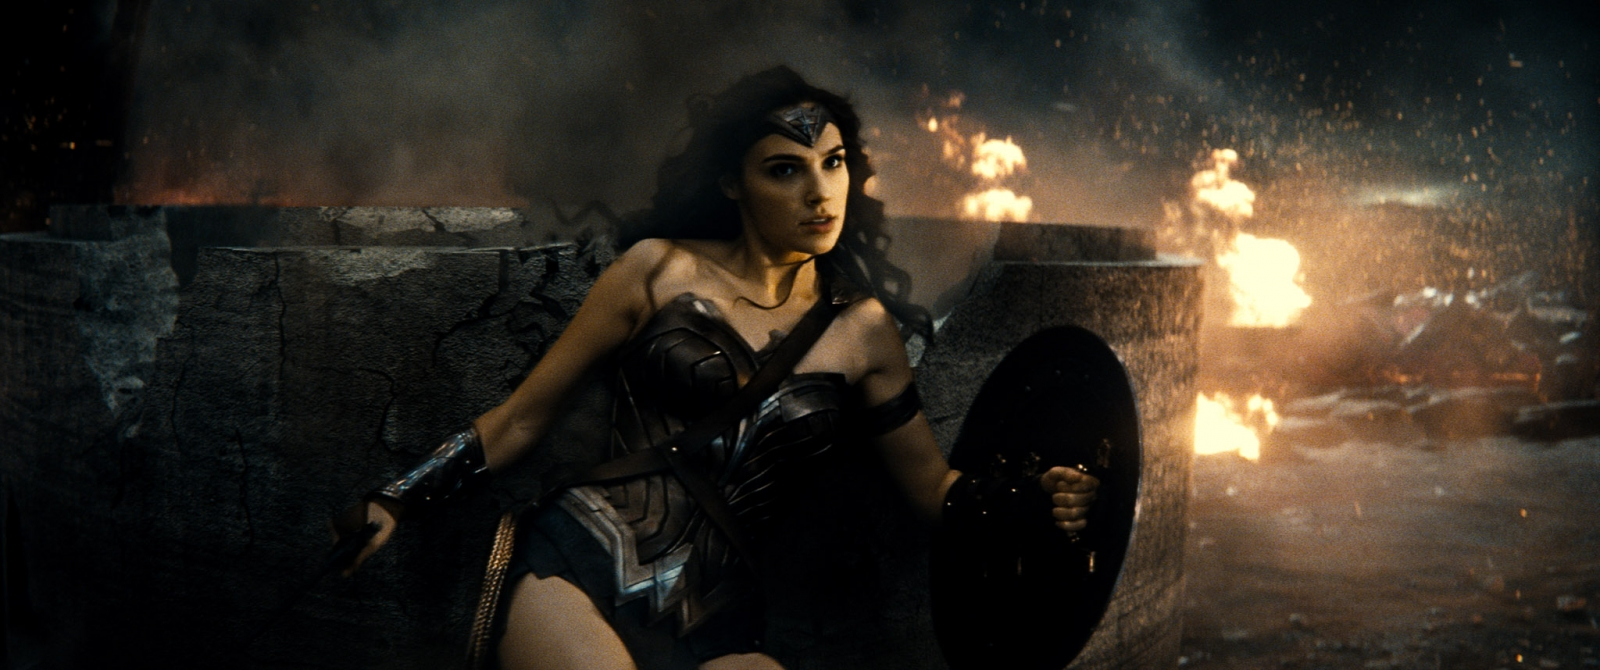 Wonder Woman in Batman v Superman